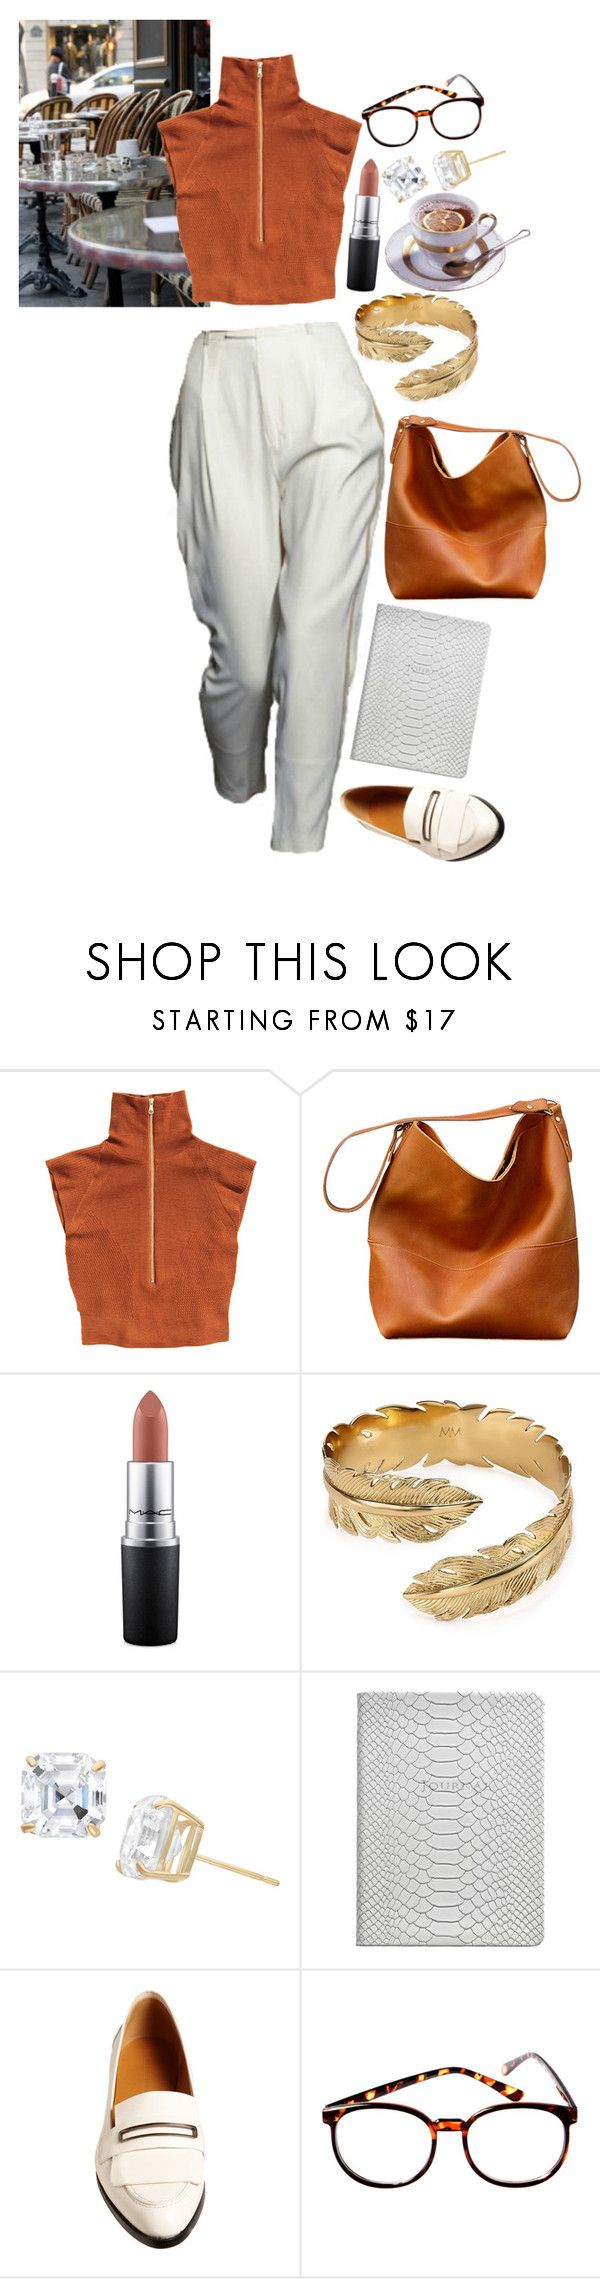 """Untitled #881"" by brooklynrebelle ❤ liked on Polyvore featuring Doo.Ri, H&M, MAC Cosmetics, Melinda Maria, Gioelli, GiGi New York, Balenciaga, fred flare, Lunch and weekendoutfit"